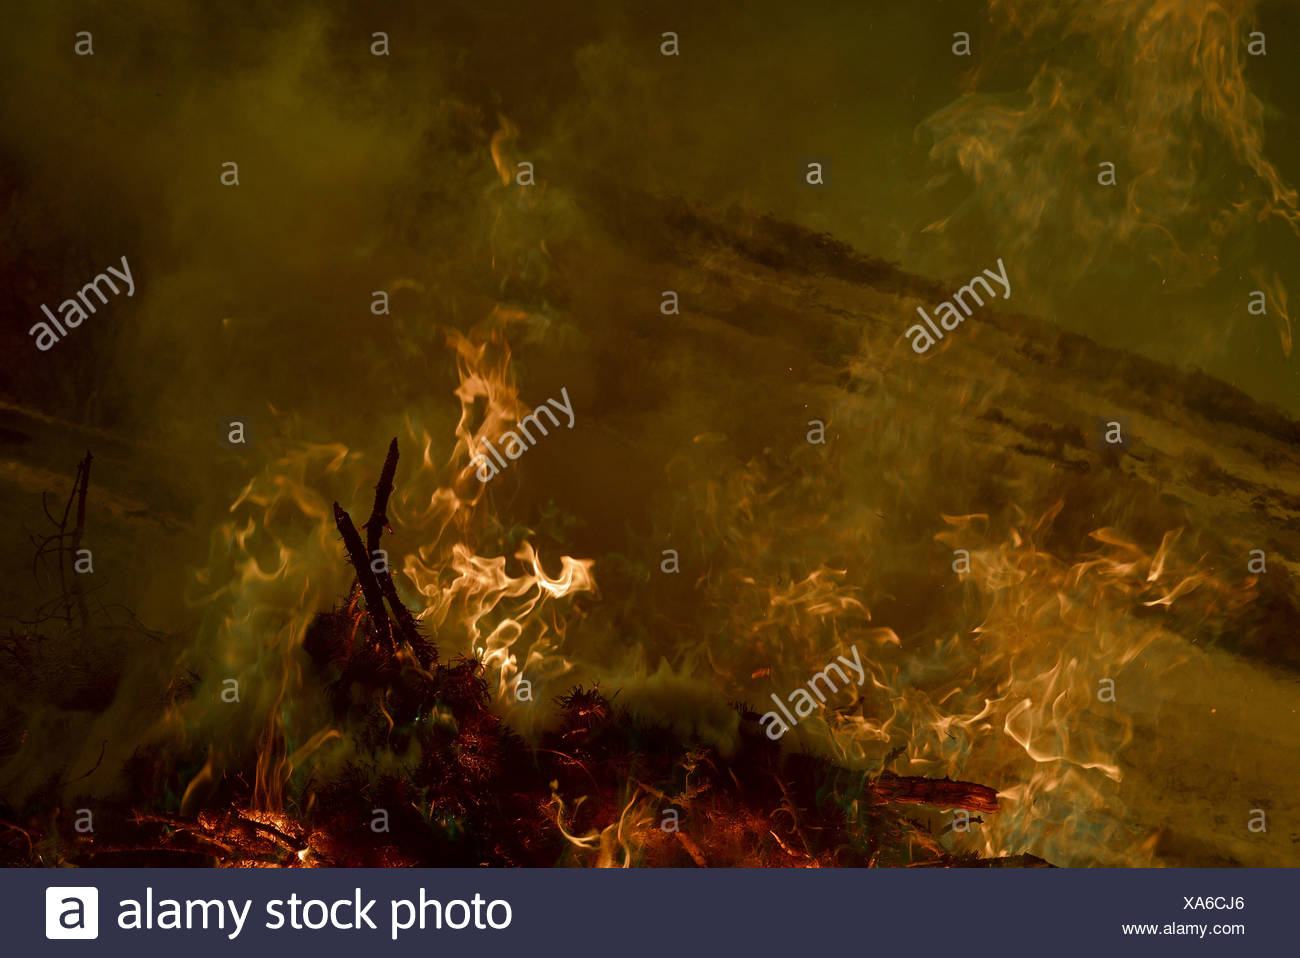 campfire fire flames surreal concepts art smoke infrared